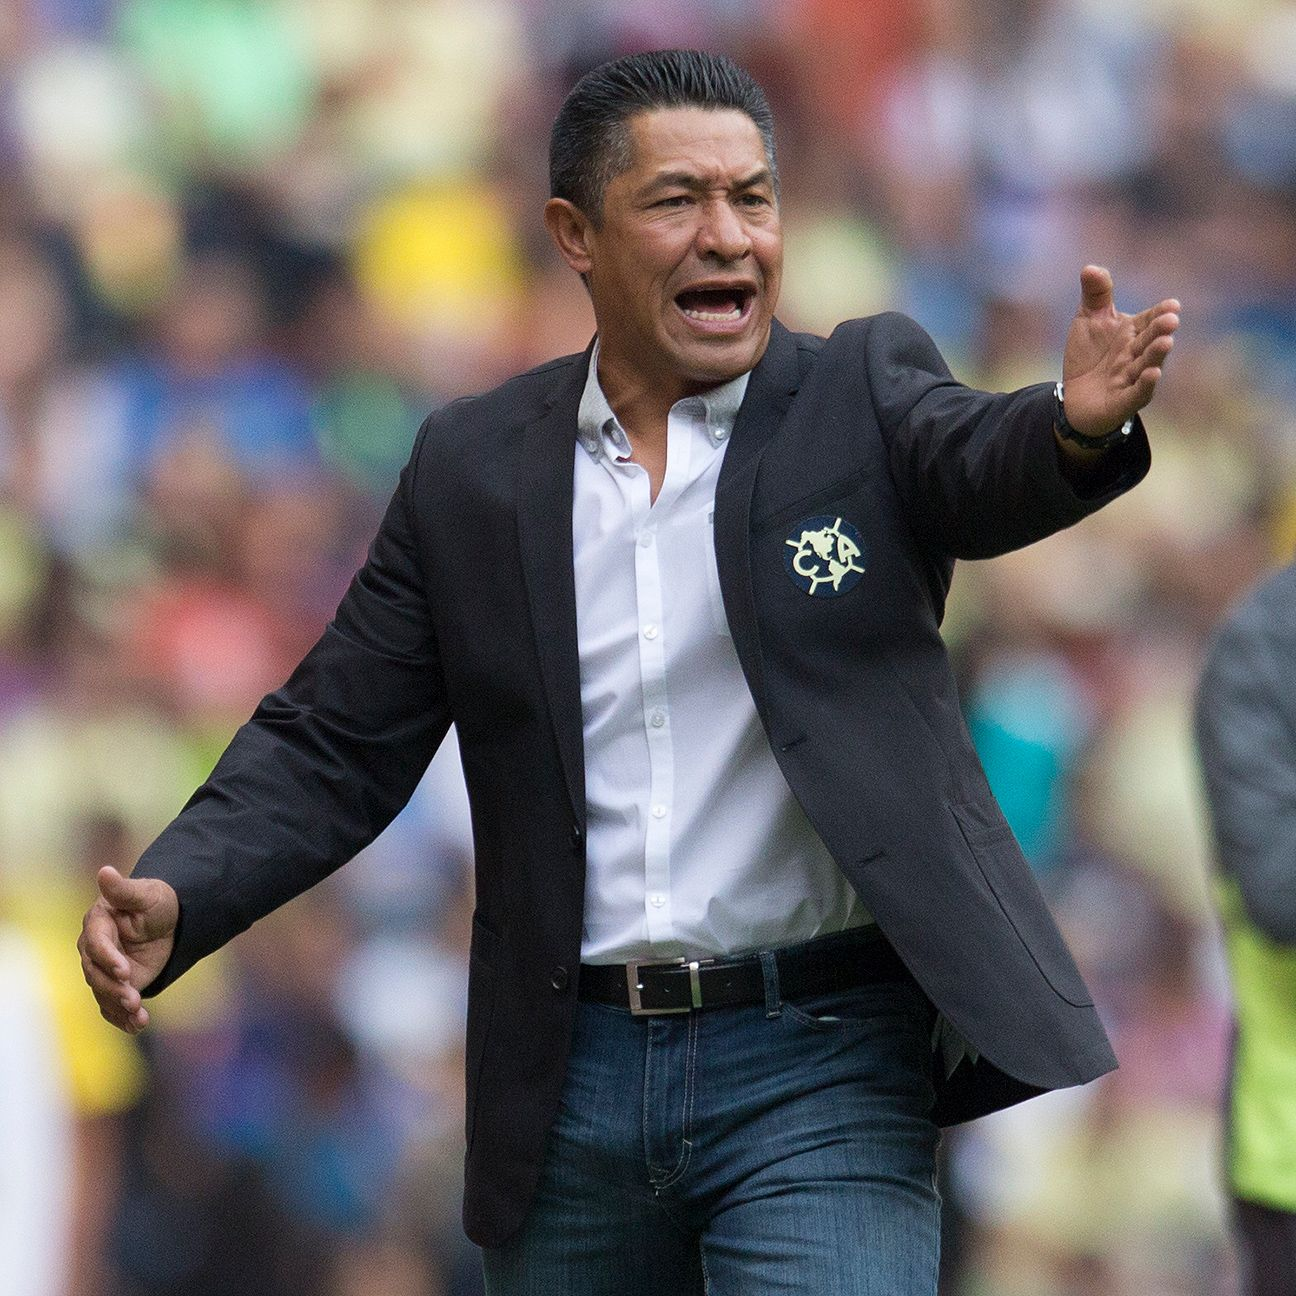 America head coach Ignacio Ambriz is looking to deliver the club its 13th Mexican league title.